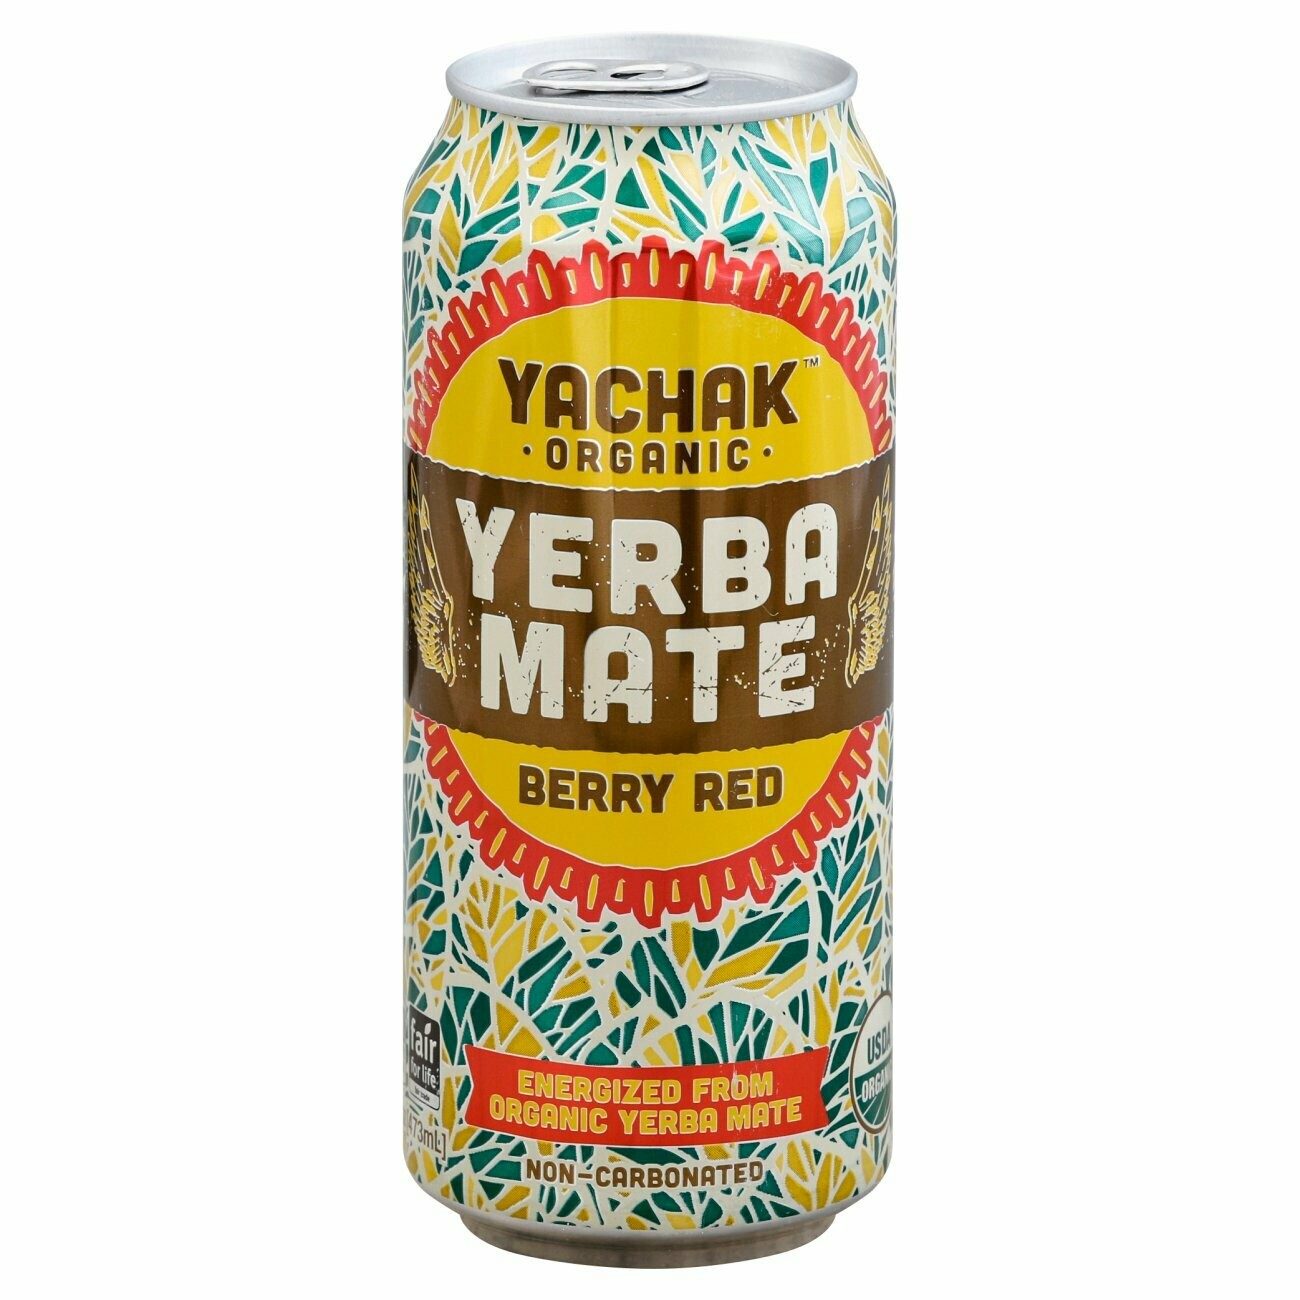 Yachak Yerba Mate Berry Red